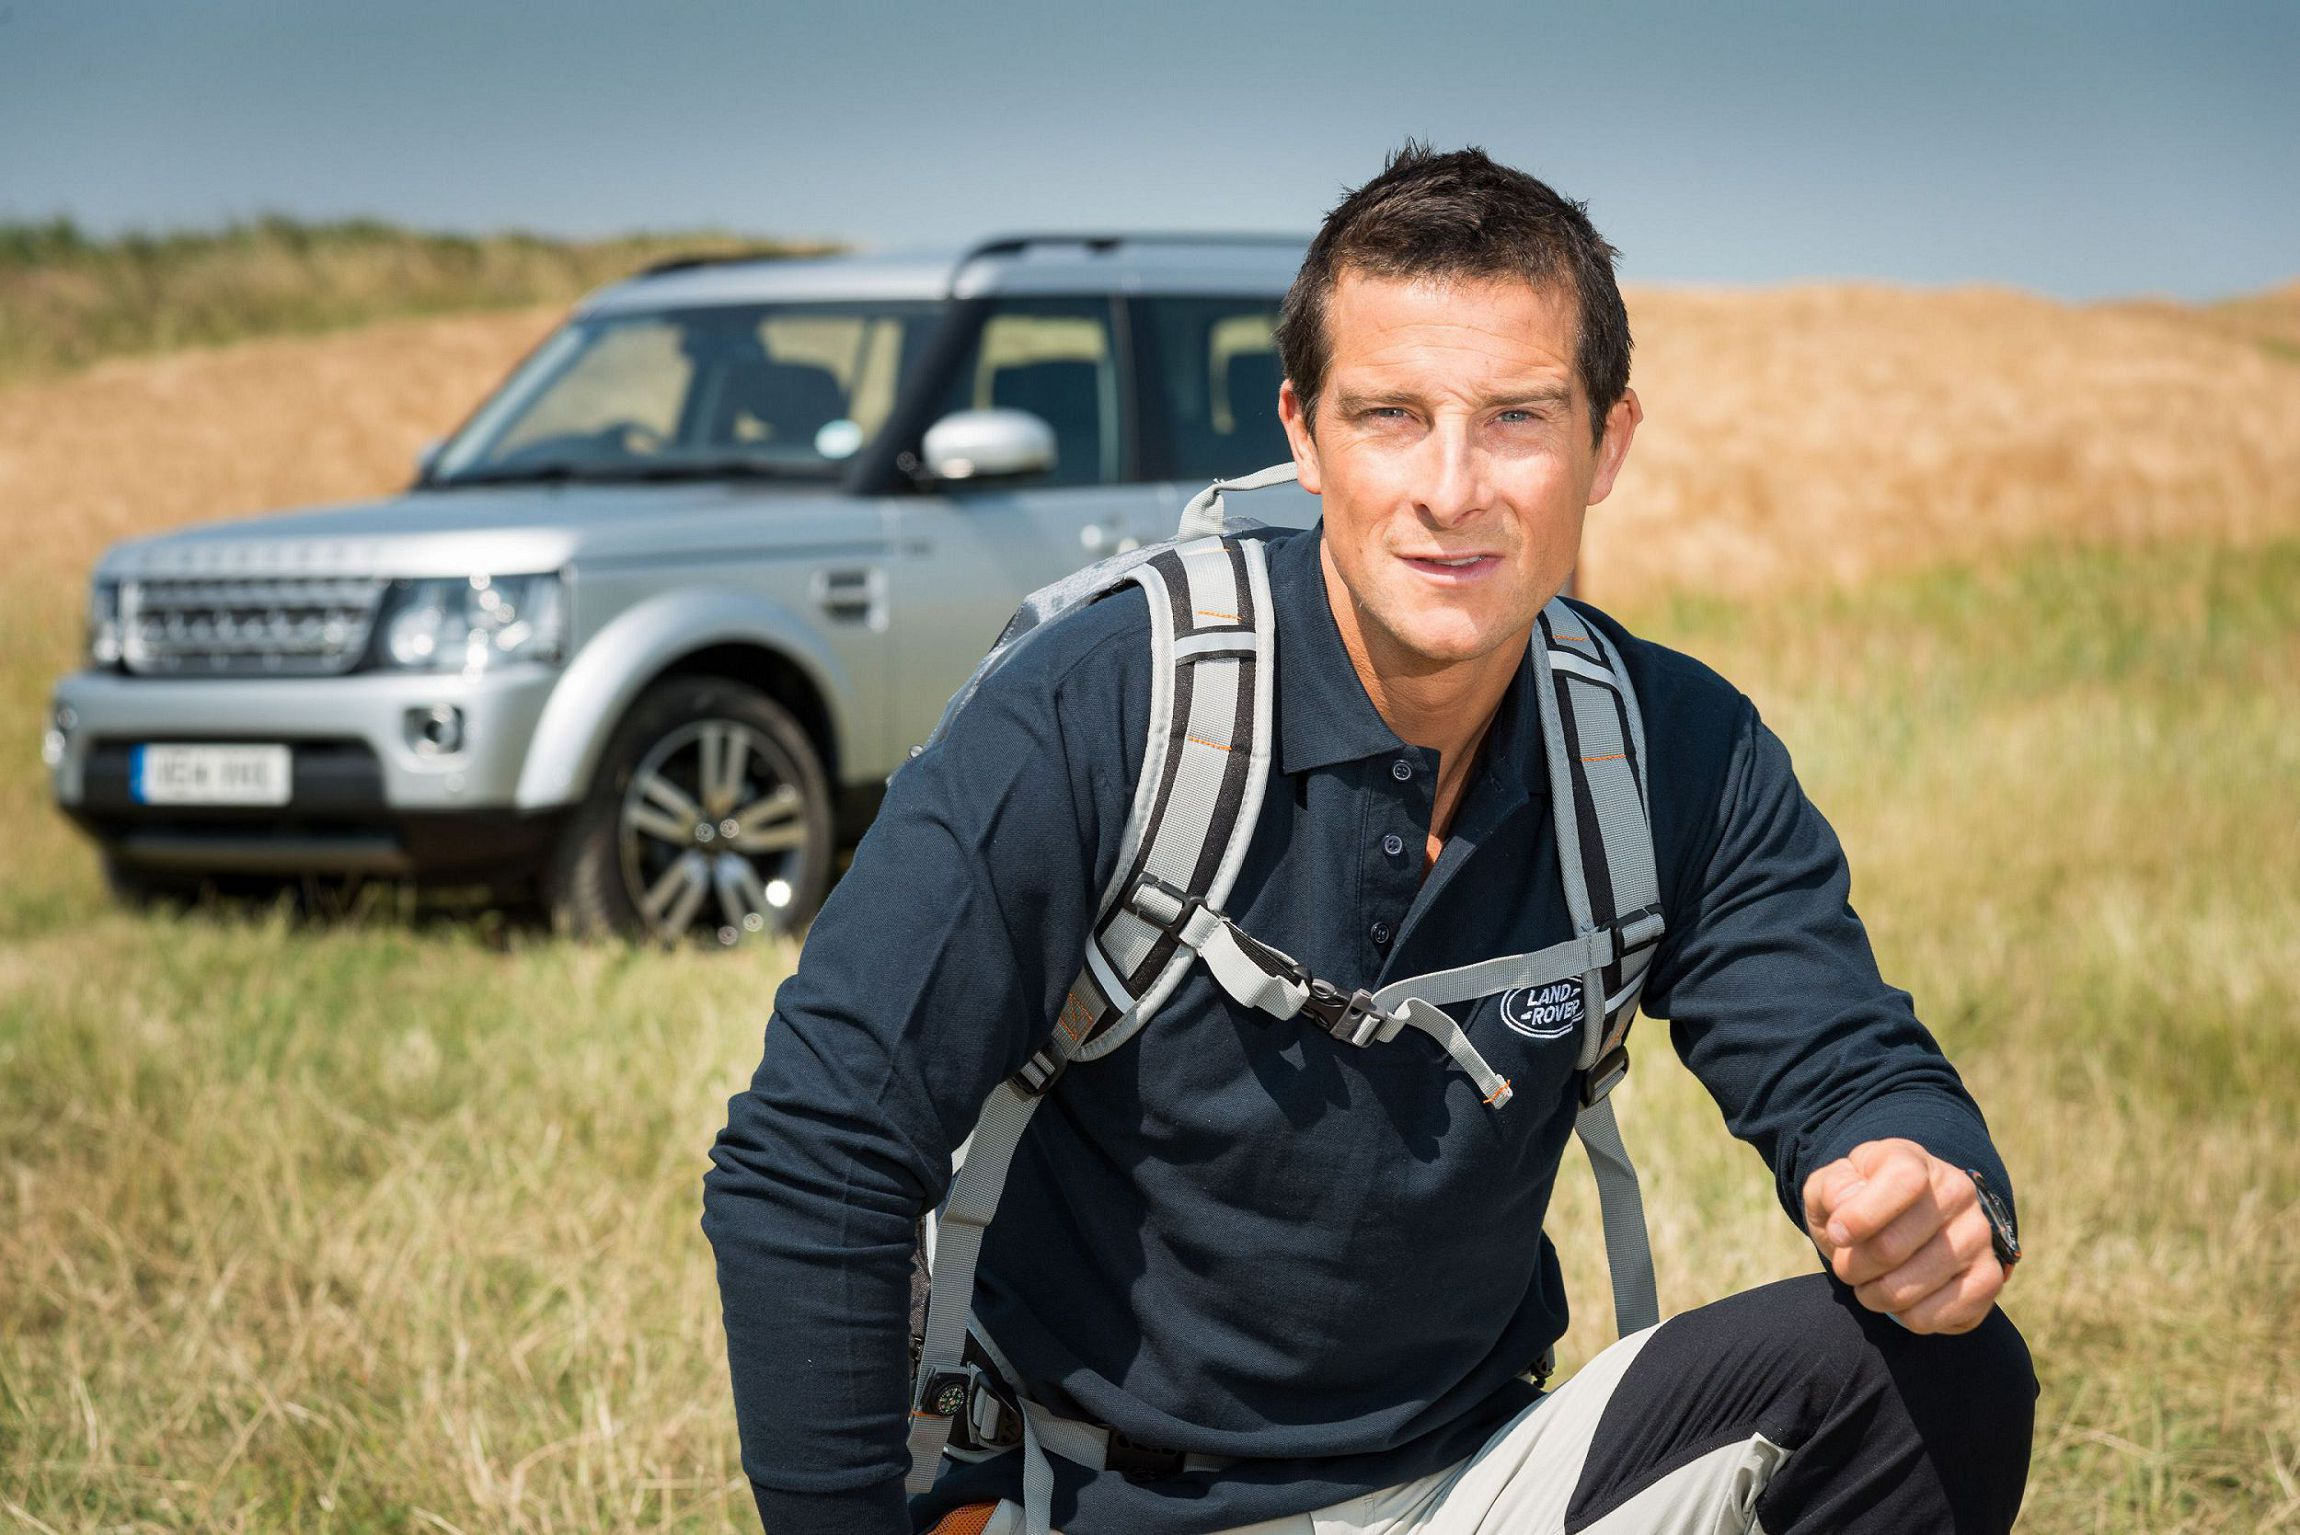 Bear Grylls In High Resolution